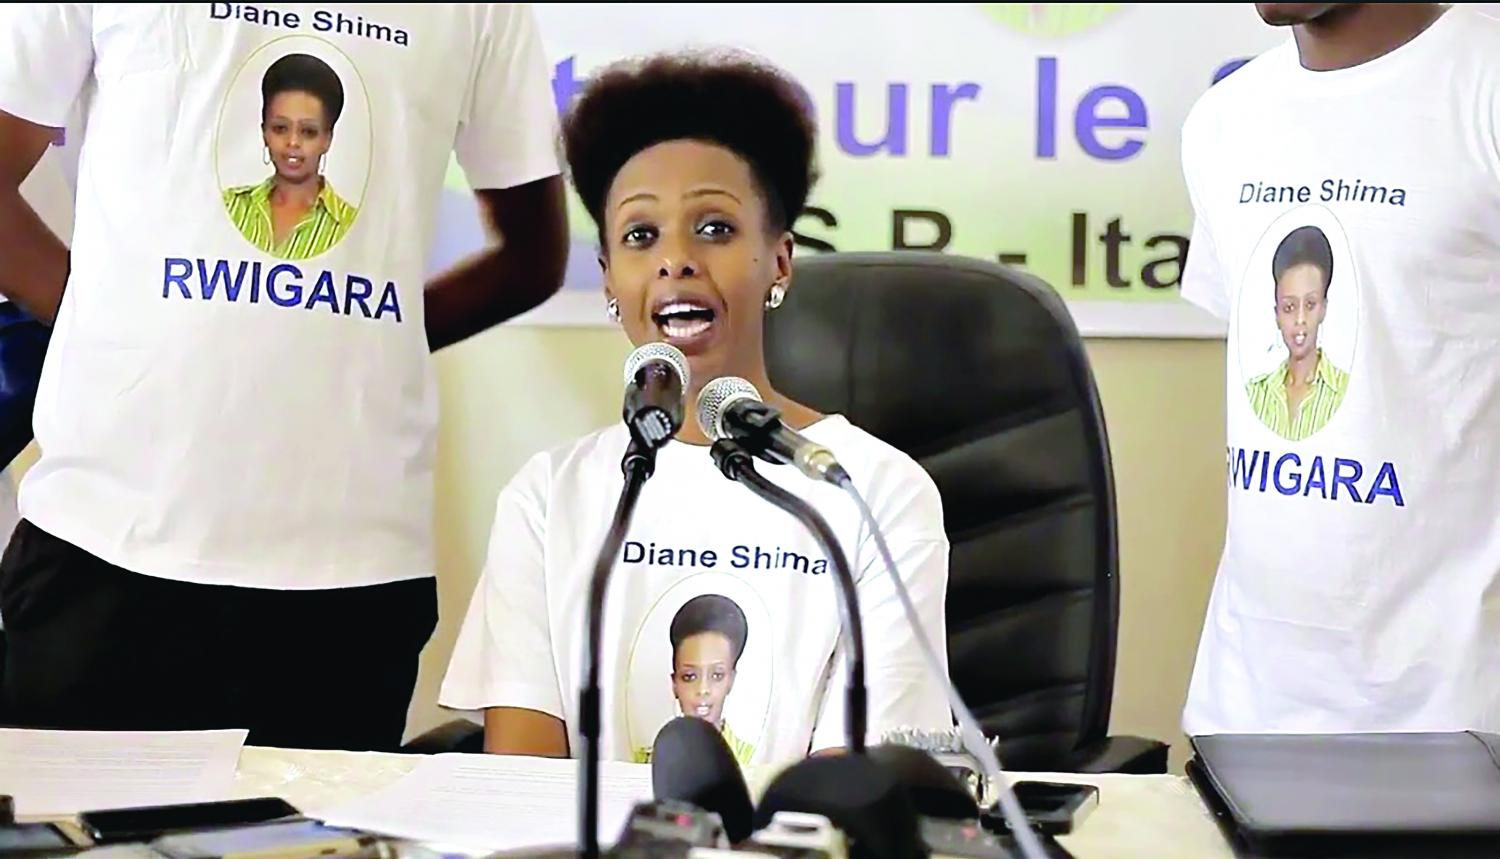 Sacramento State alumna Diane Rwigara announced her plans to run for president of Rwanda in May. Shortly after her announcement, supposed nude photos of Rwigara were released in what her supporters say was a smear campaign. Rwigara was jailed on charges of tax evasion, forgery and insurrection after her petition to appear on the ballot was thrown out.